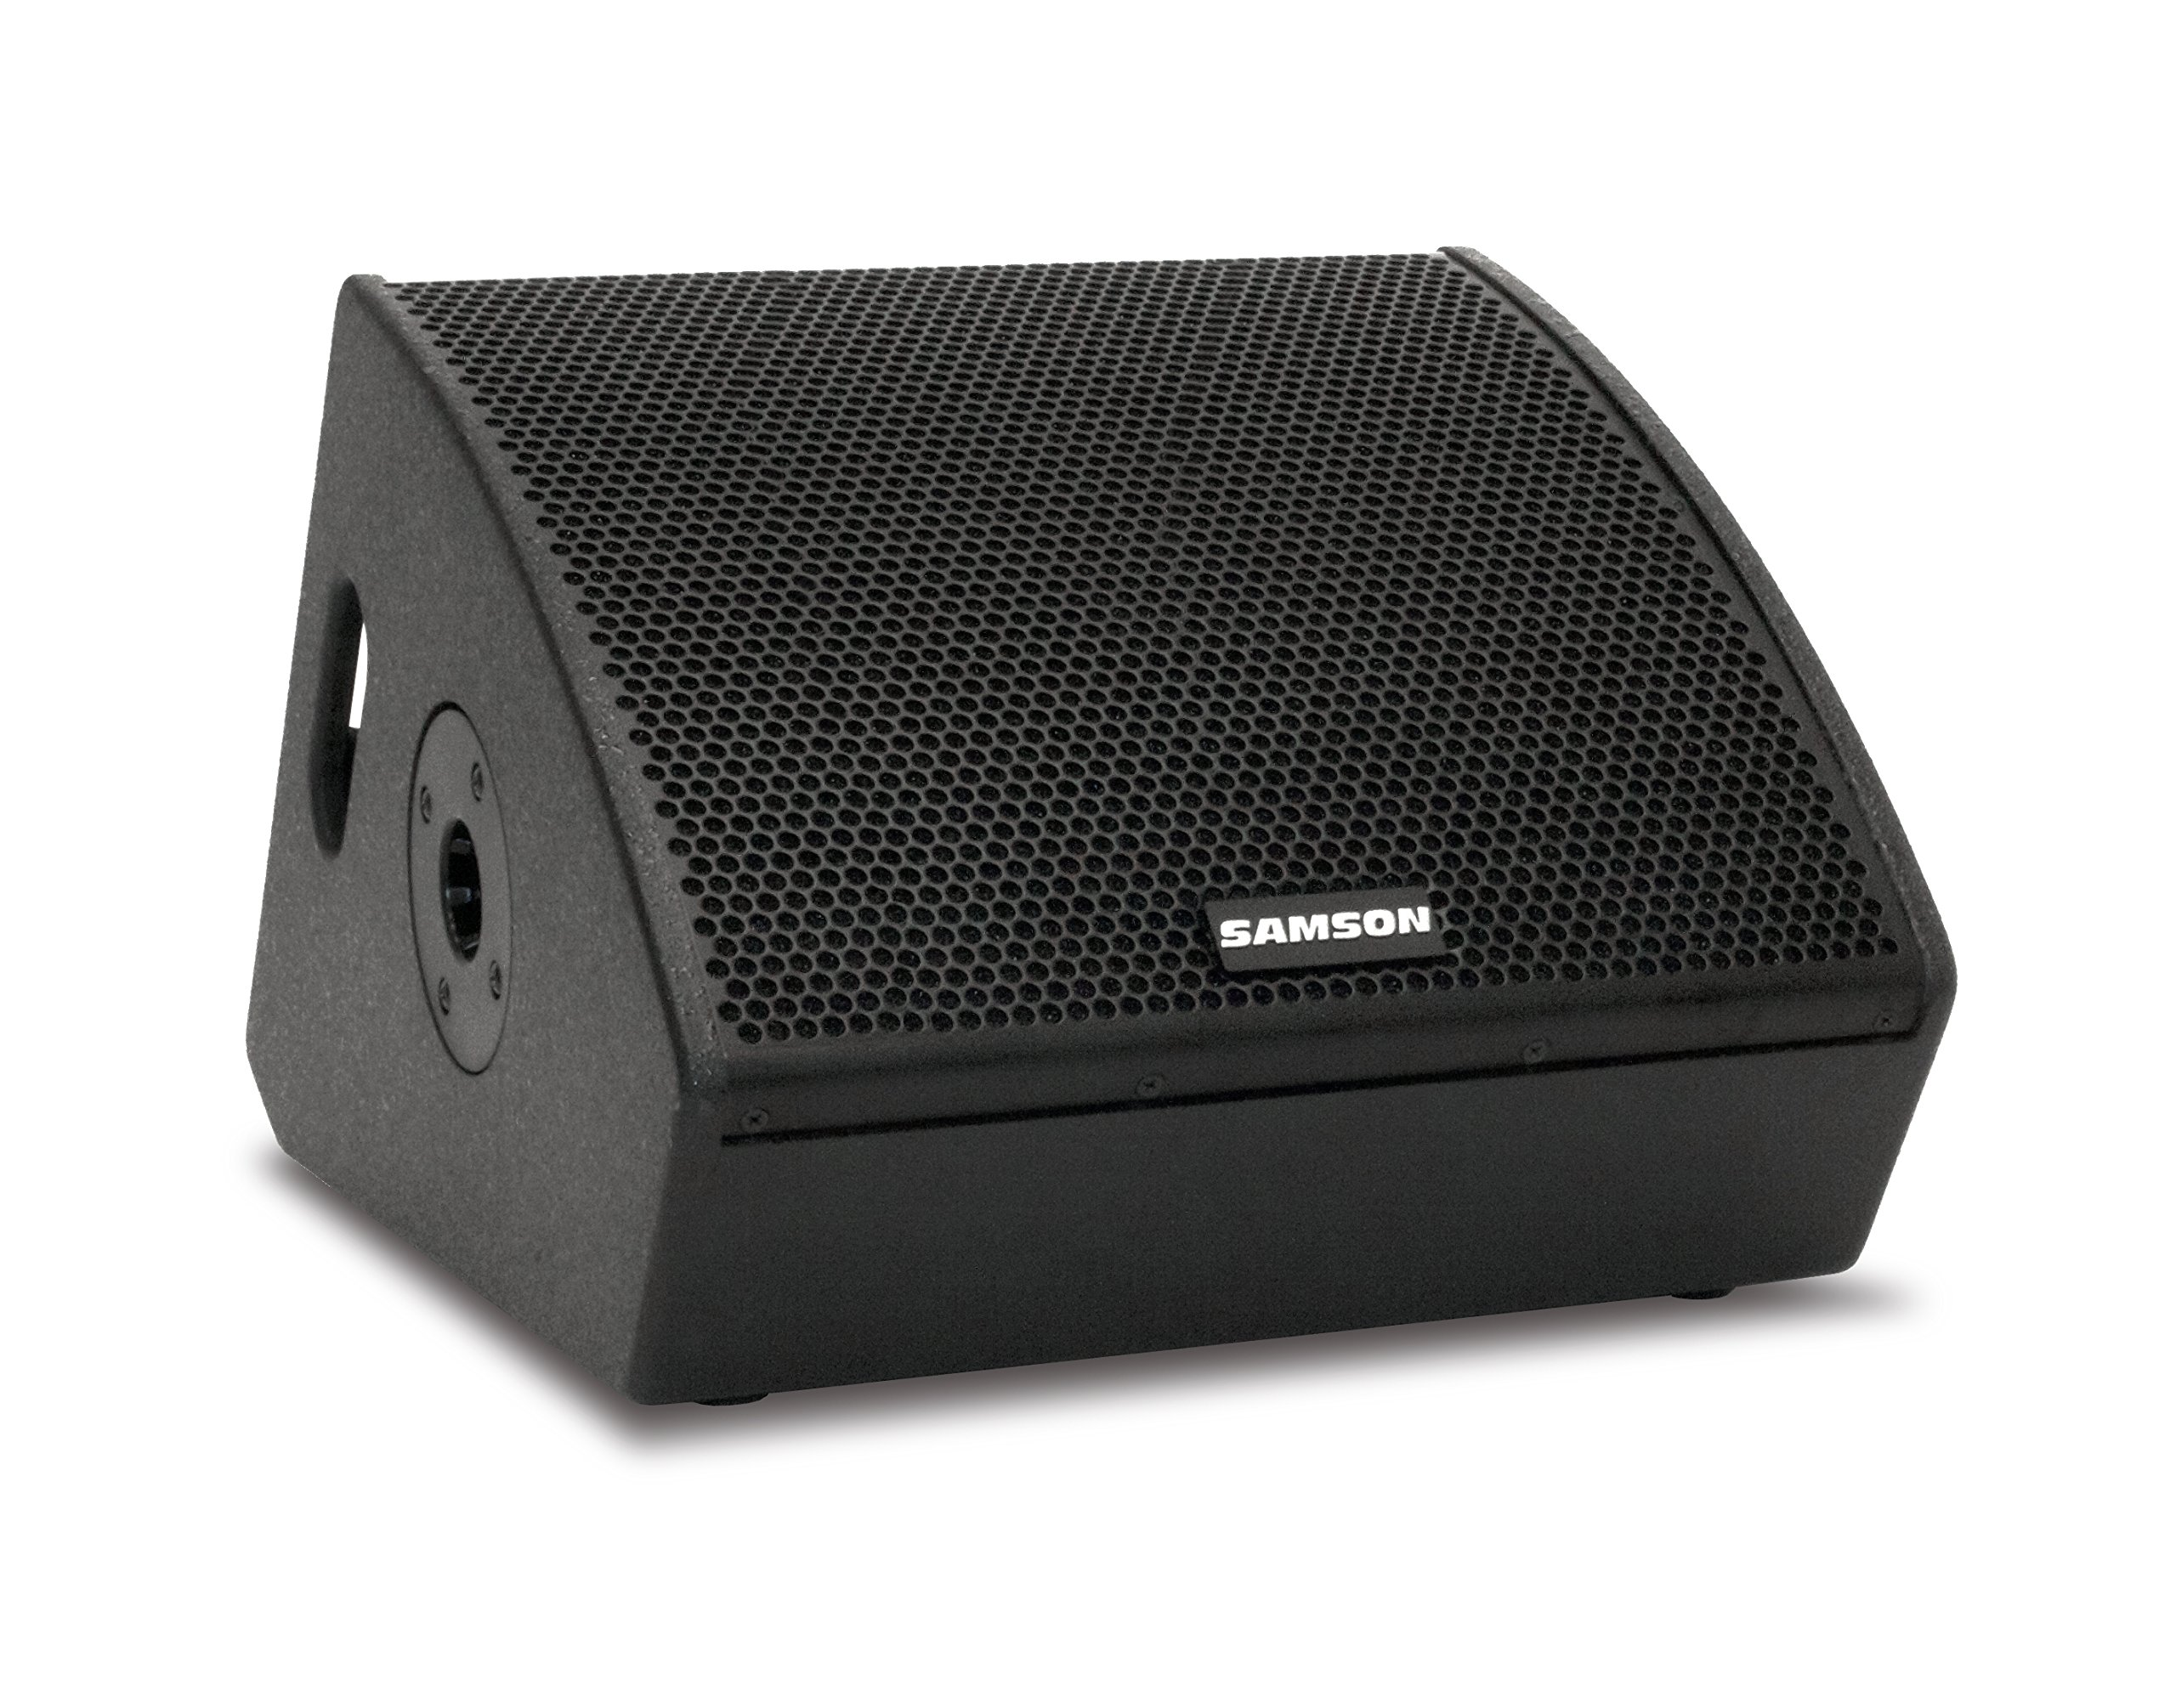 Samson RSXM10A - 800W 2-Way Active Stage Monitor by Samson Technologies